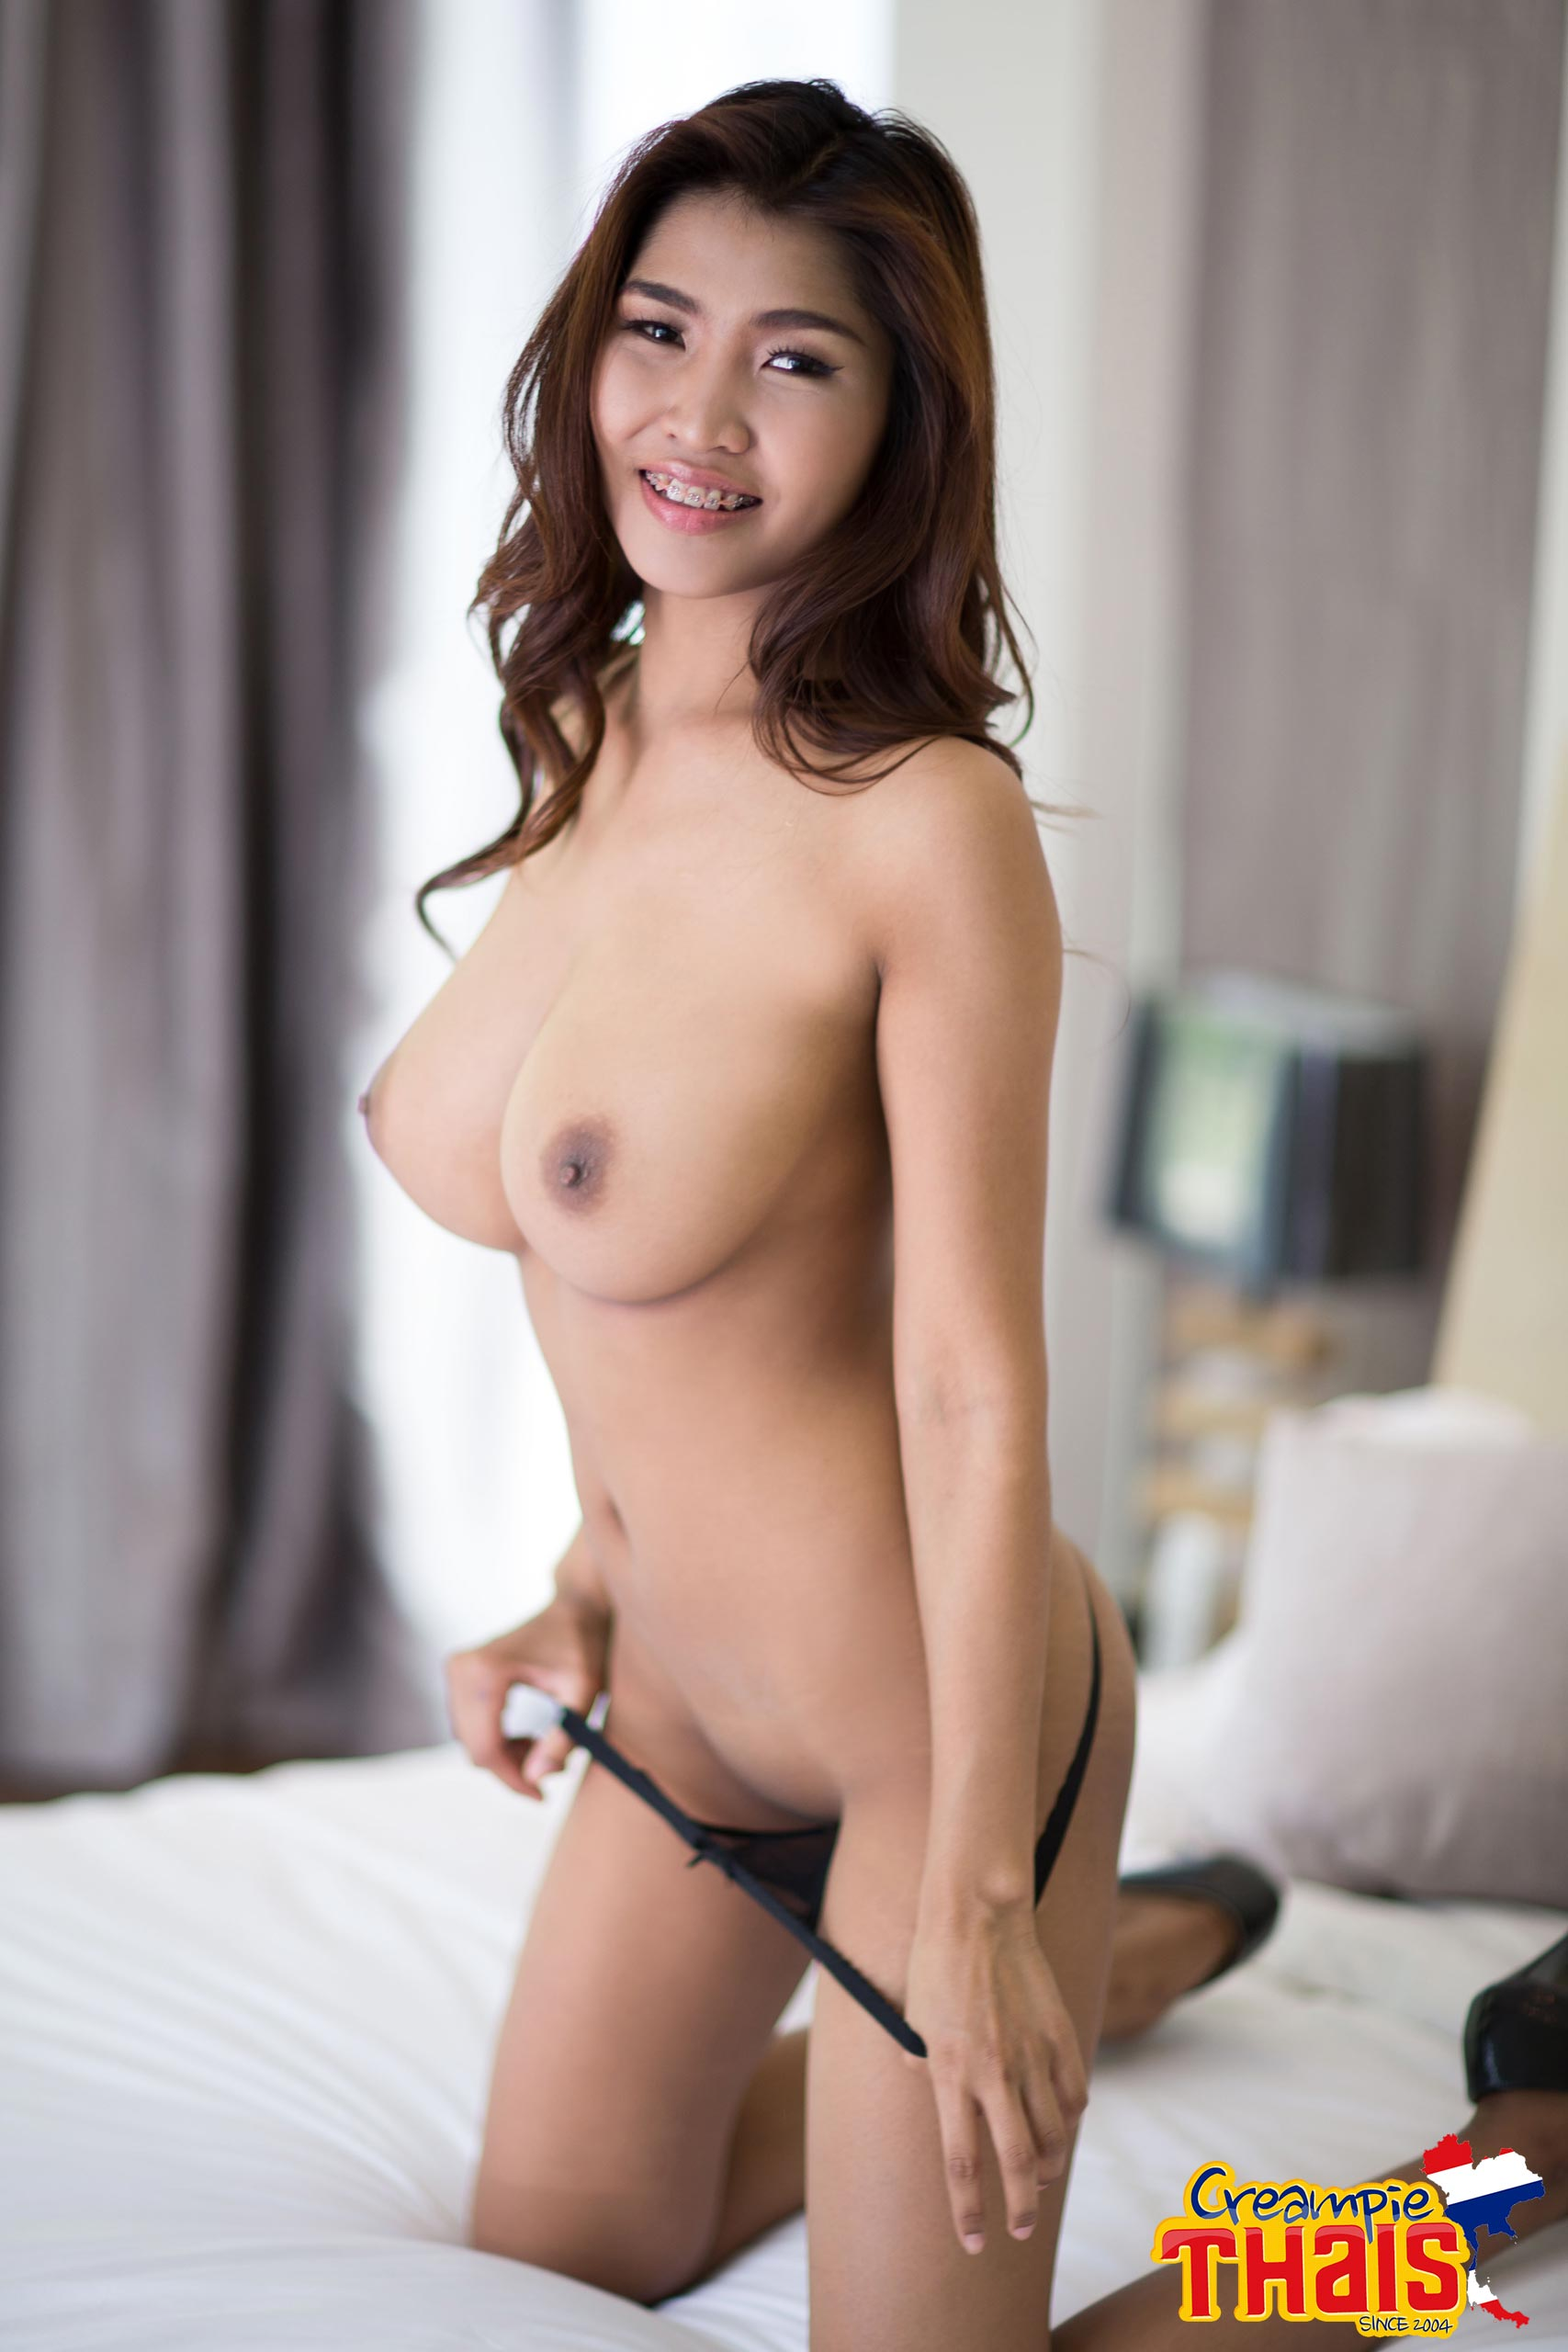 Creampie Thais Big Tits Teen With Braces - Teens In Asia-4064